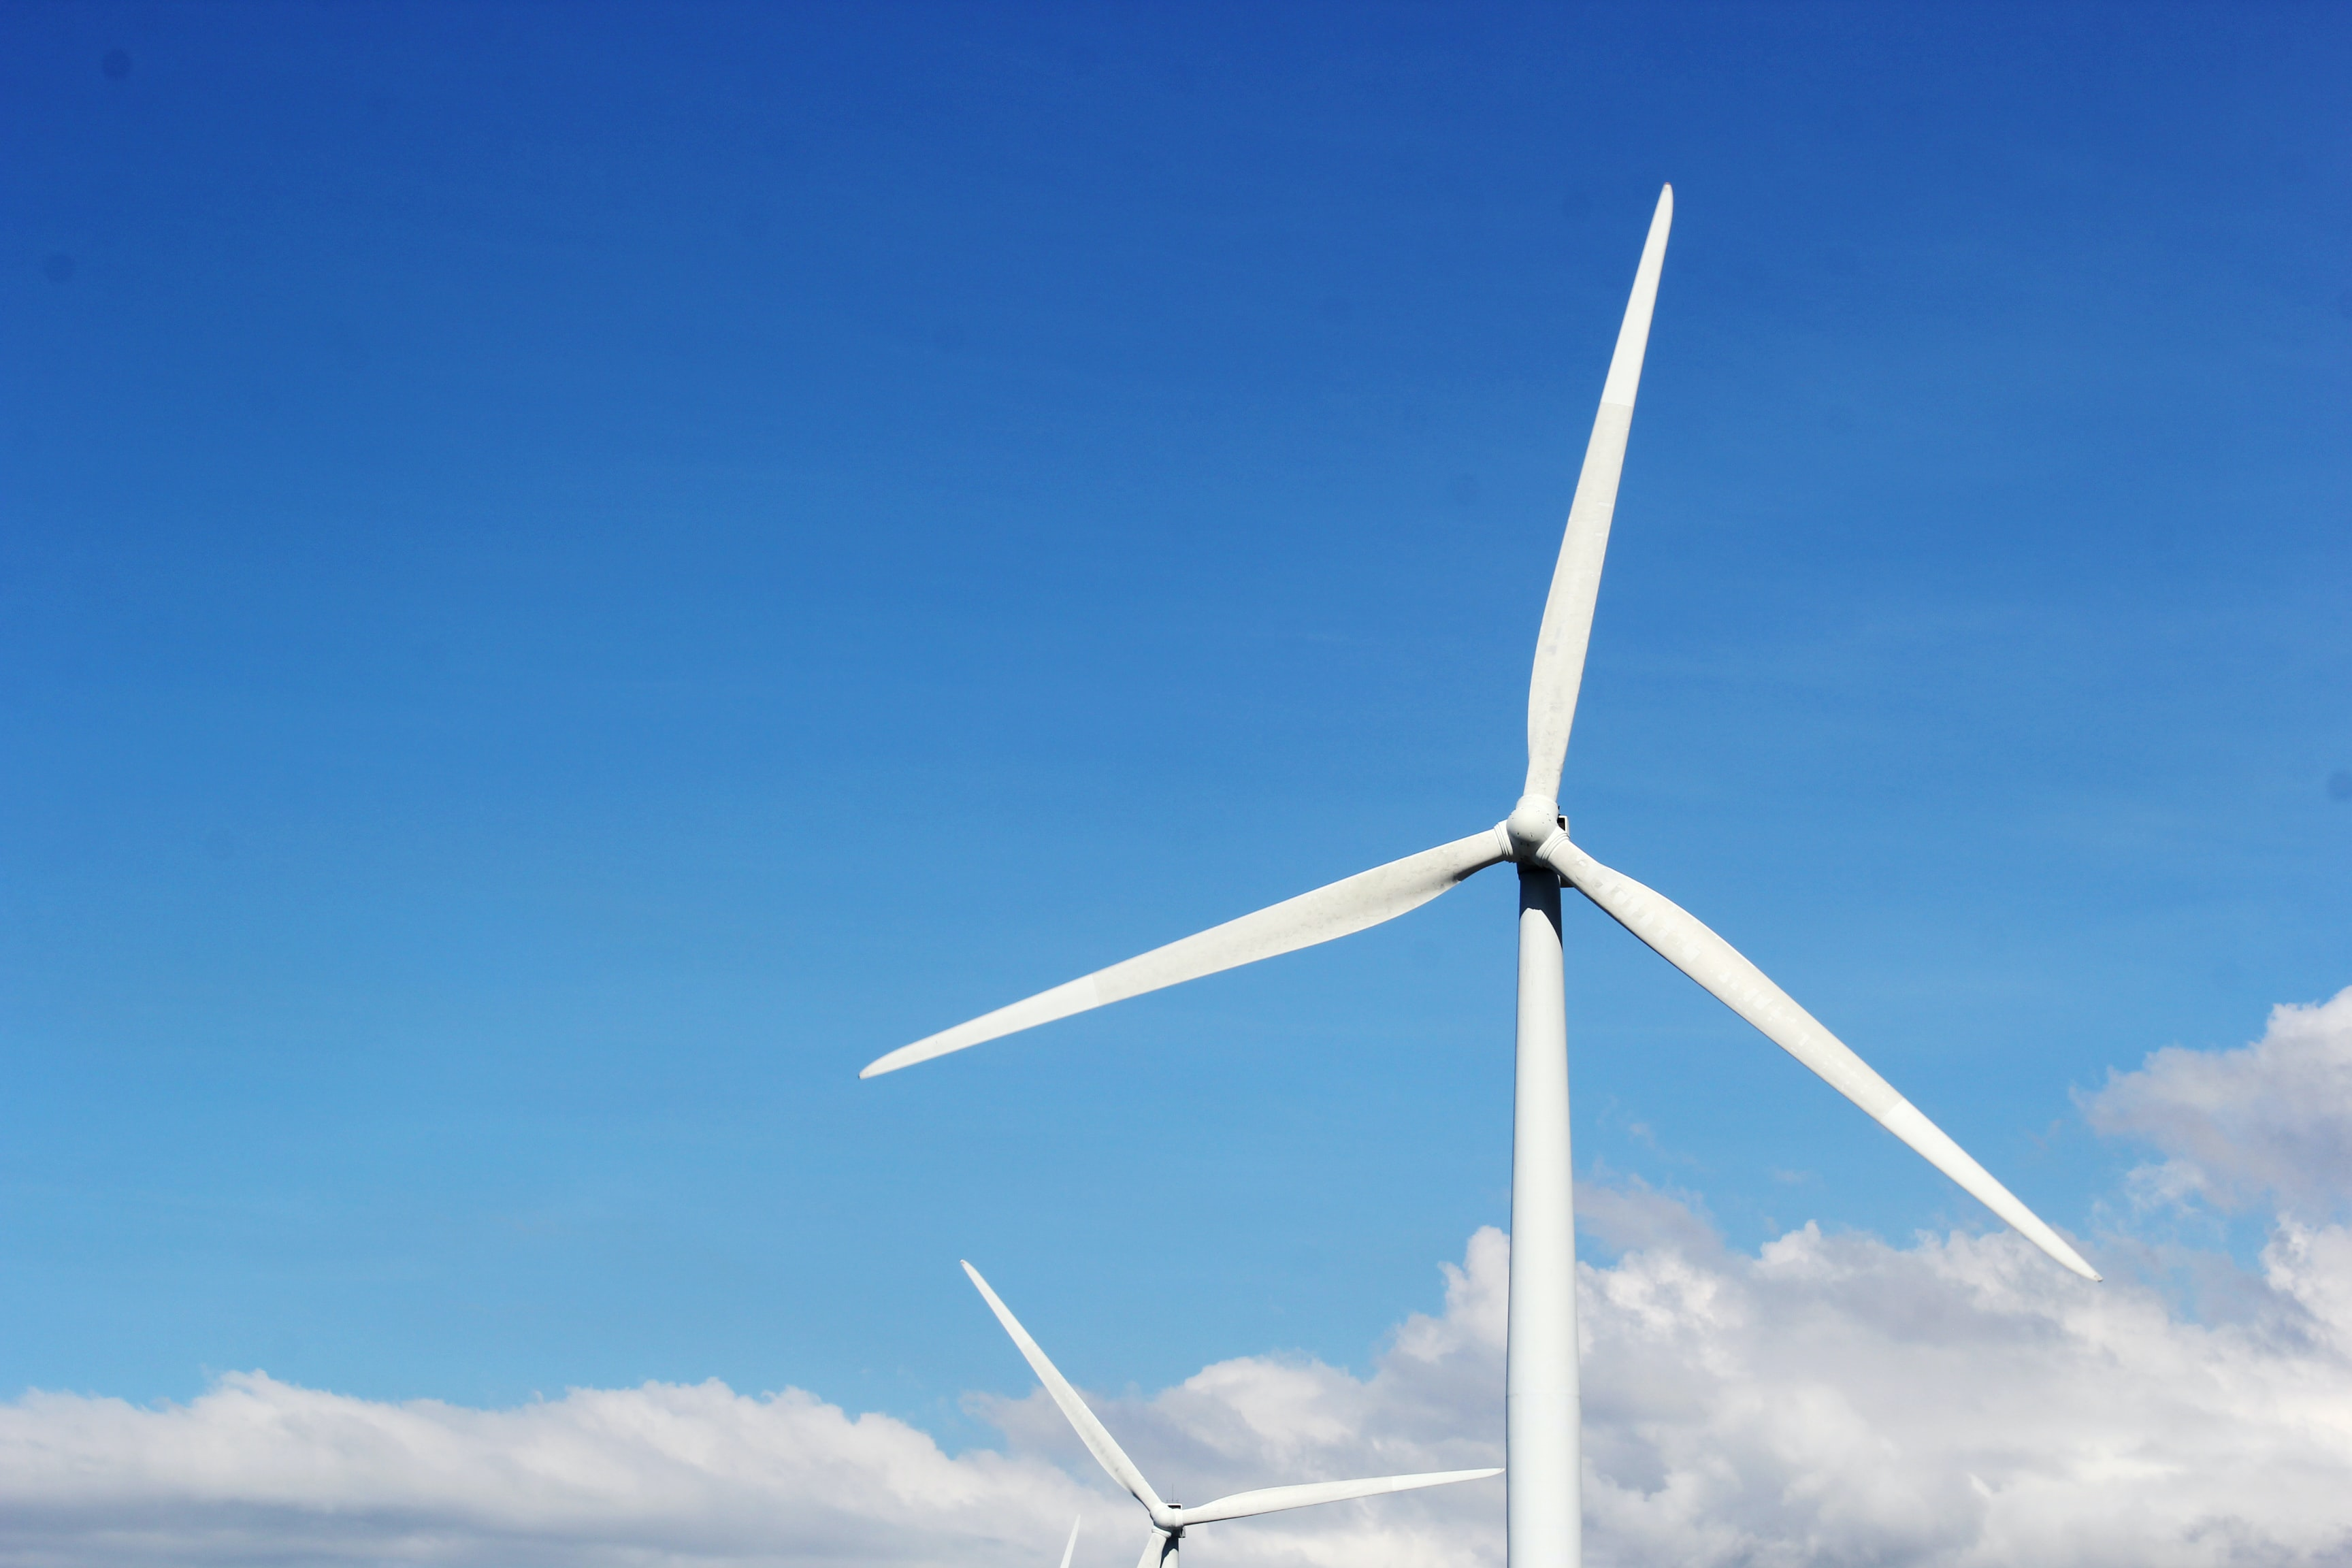 LYNDDAHL invests in green energy